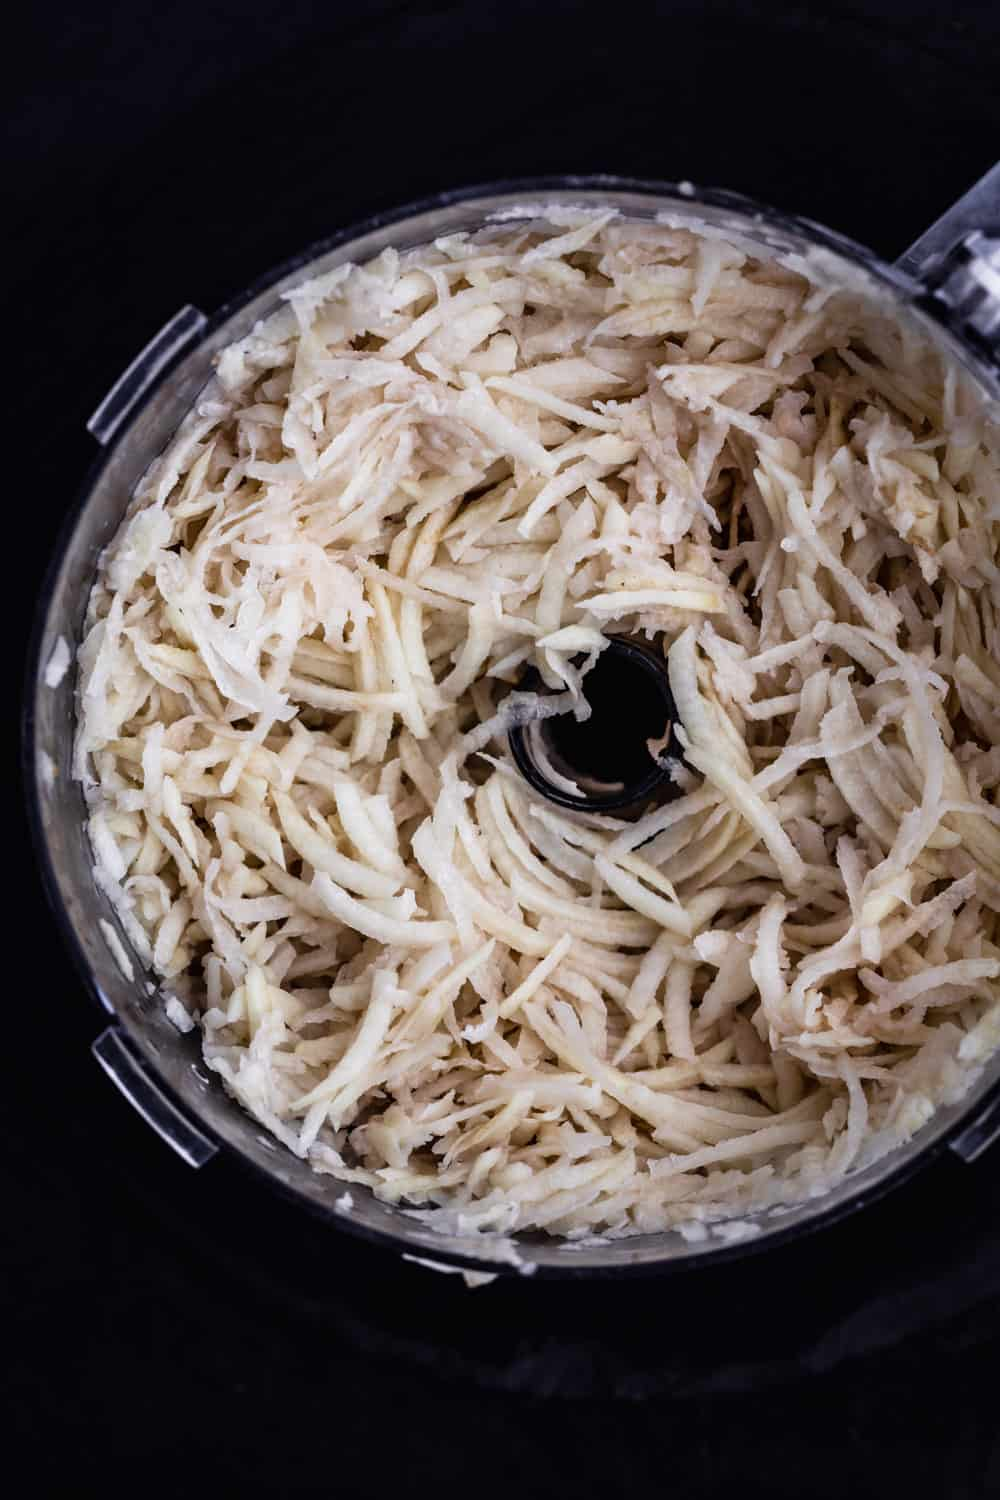 Inside of food processor shot with the shredded potatoes.